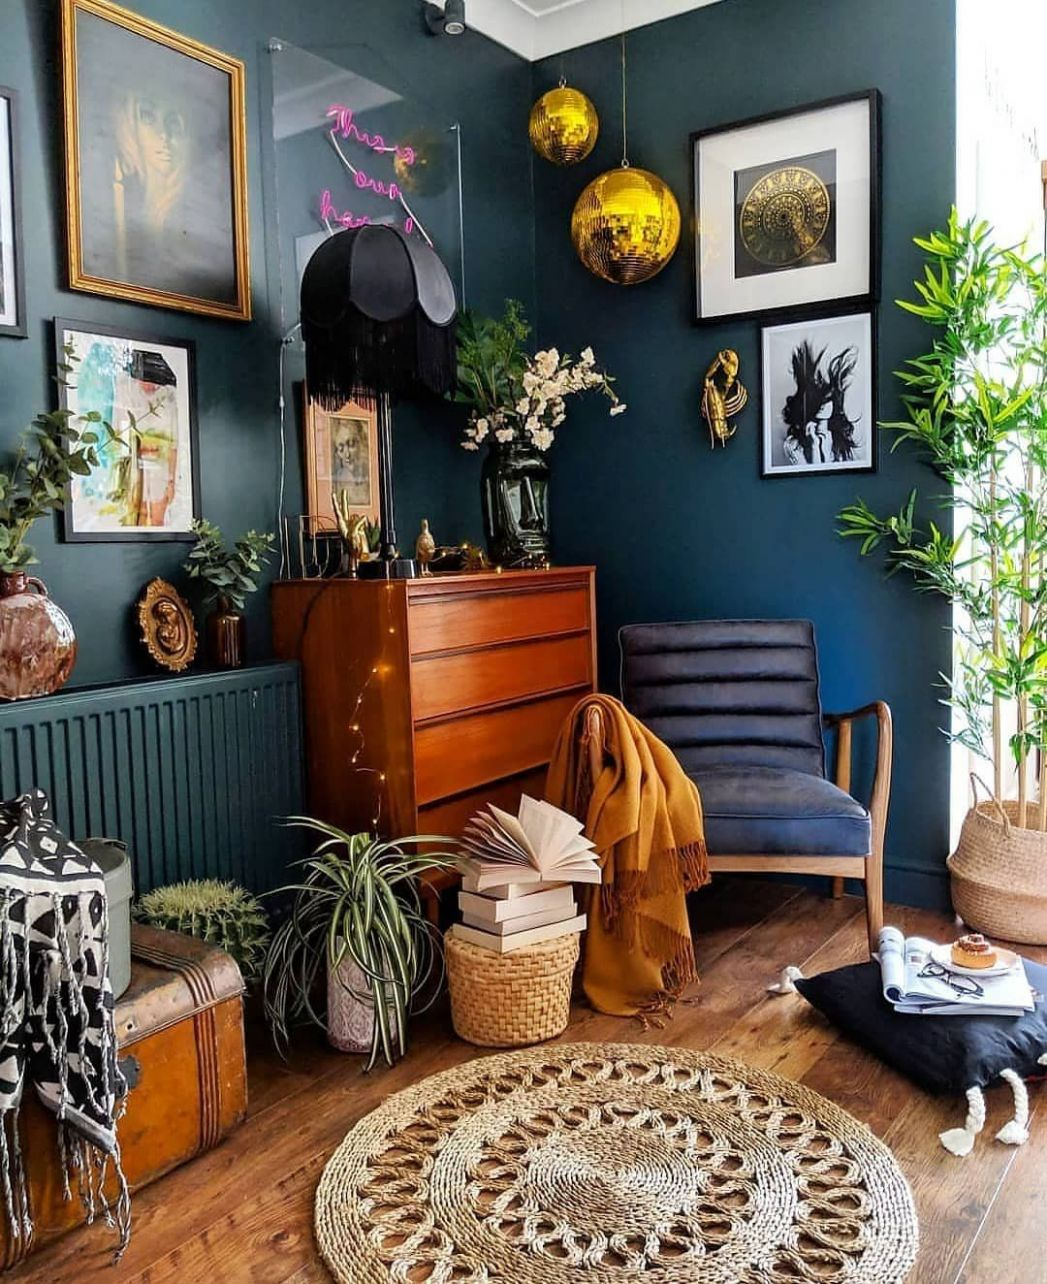 Find Tons of Decor Inspiration in This Quirky and Colorful UK Home ..